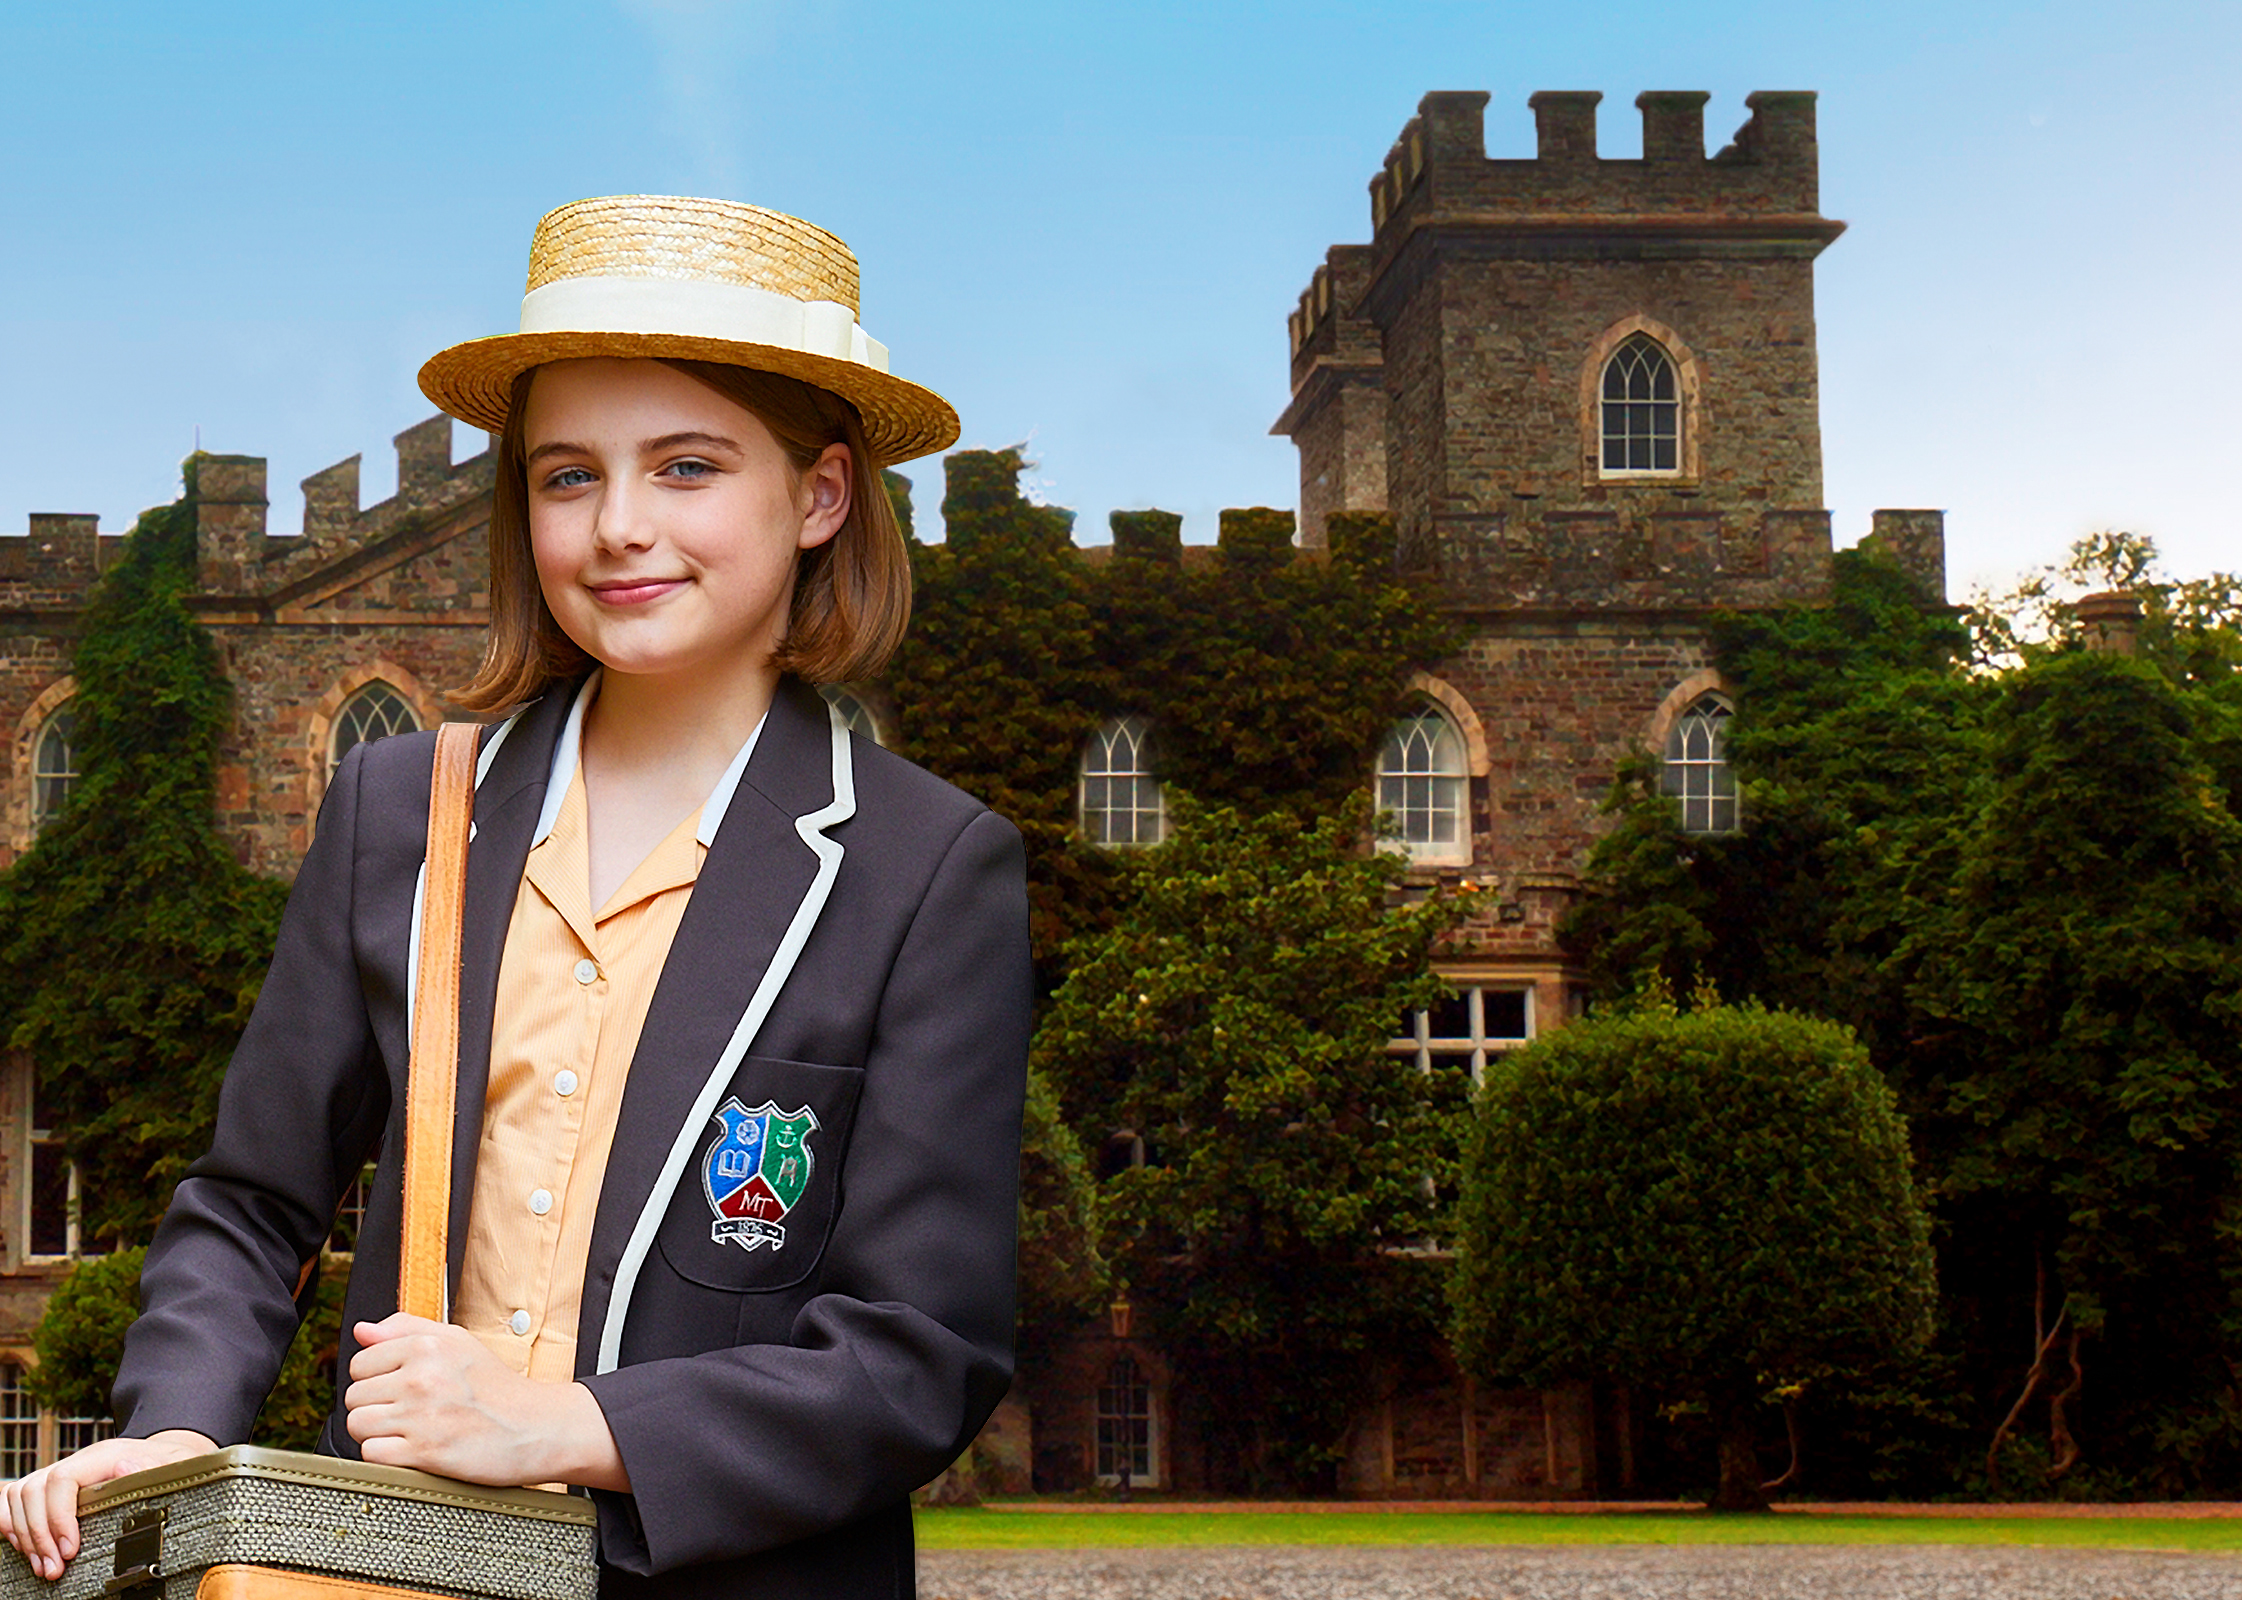 A young girl wearing a school uniform and straw hat standing in front of a boarding school surrounded by trees.